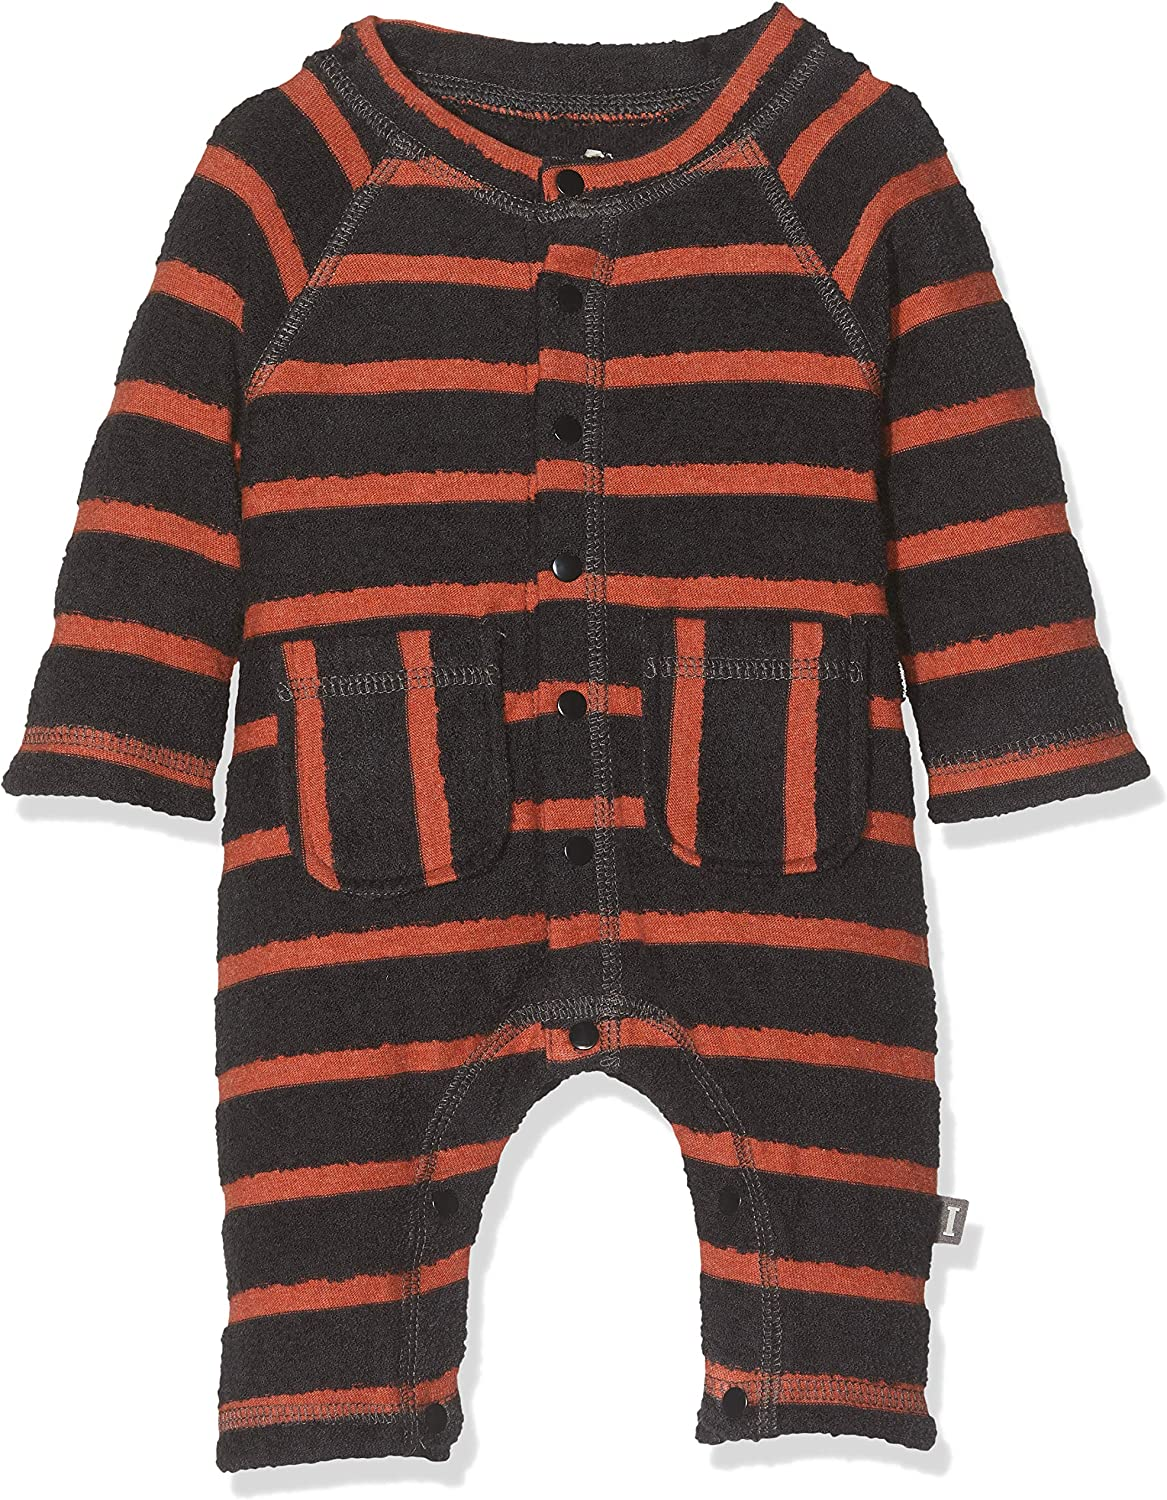 Imps /& Elfs Baby Boys Overall Long Sleeve Romper